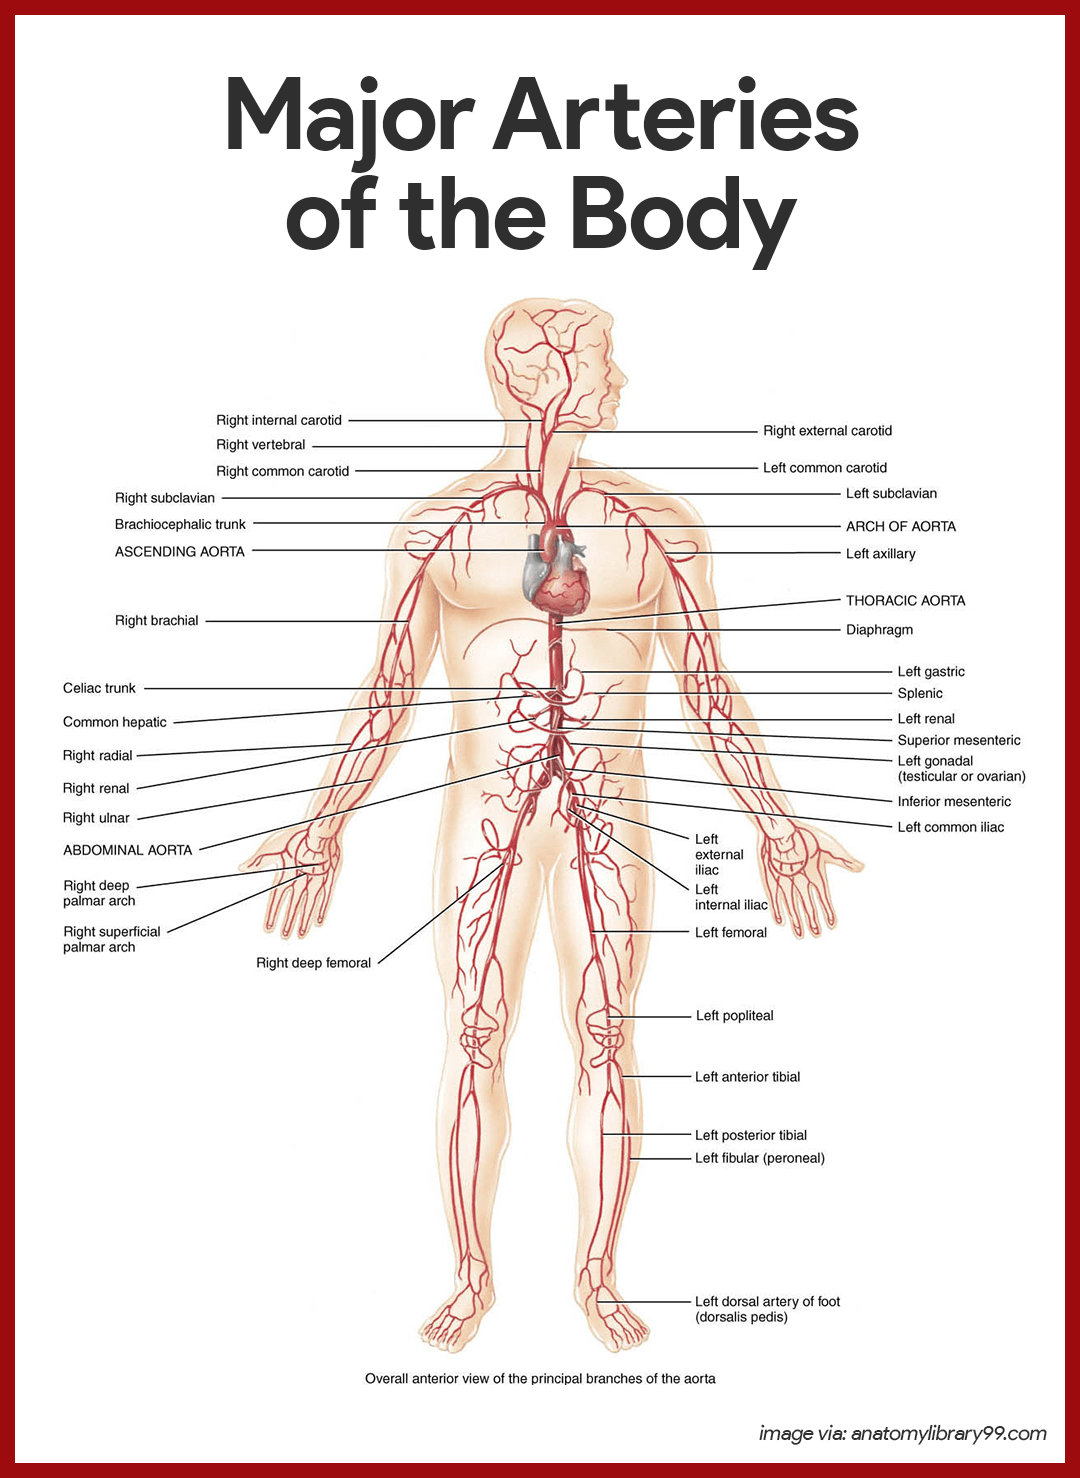 Cardiovascular System Anatomy and Physiology | Pinterest | Anatomy ...